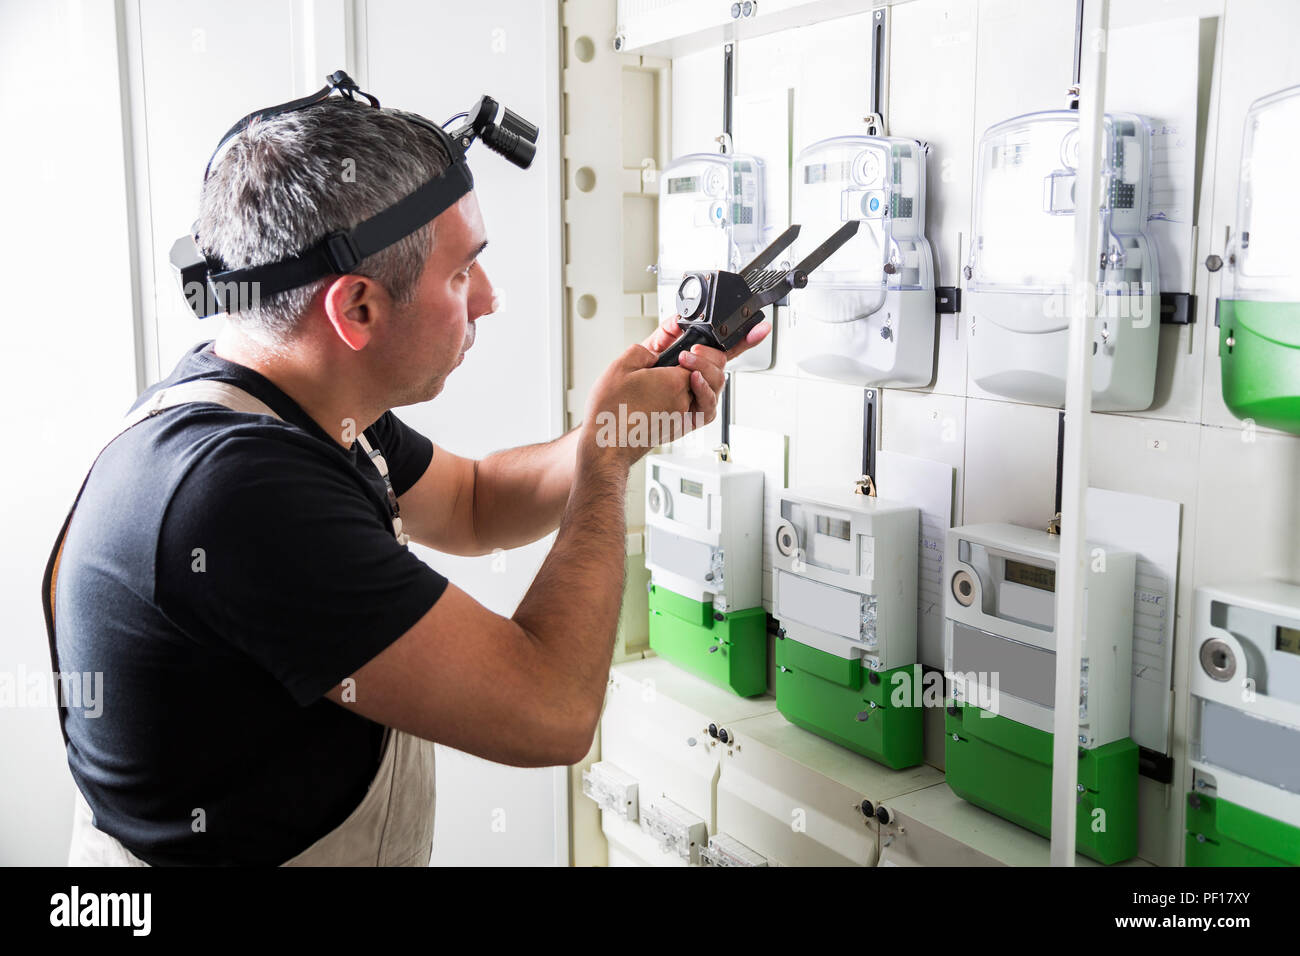 hight resolution of electrician testing equipment in fuse switch box close up stock image